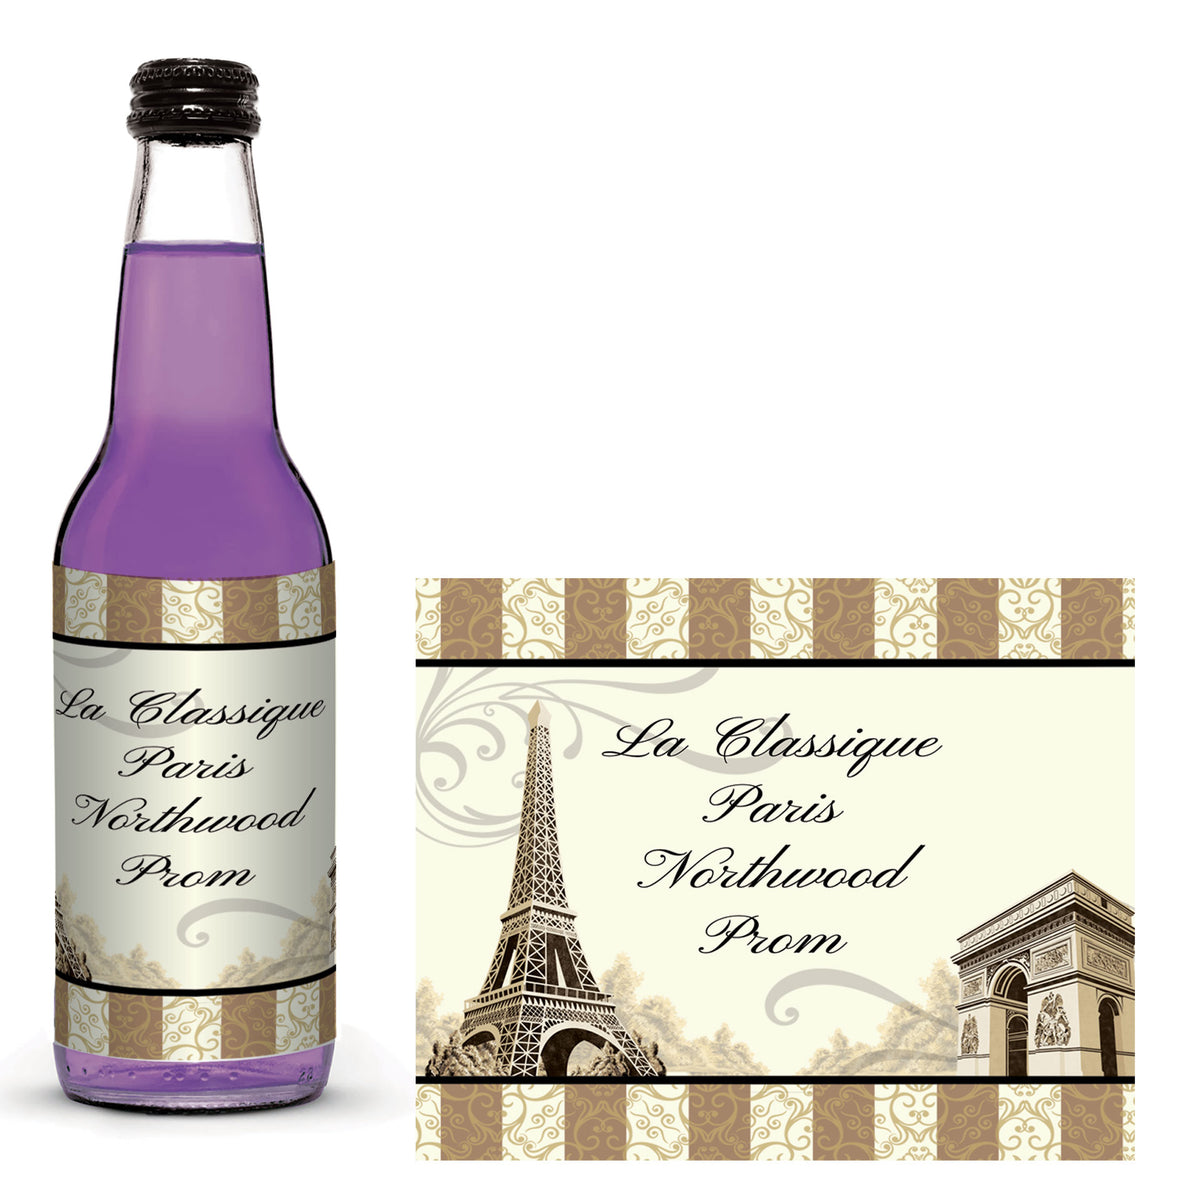 La Classique Paris Glass Bottle Labels